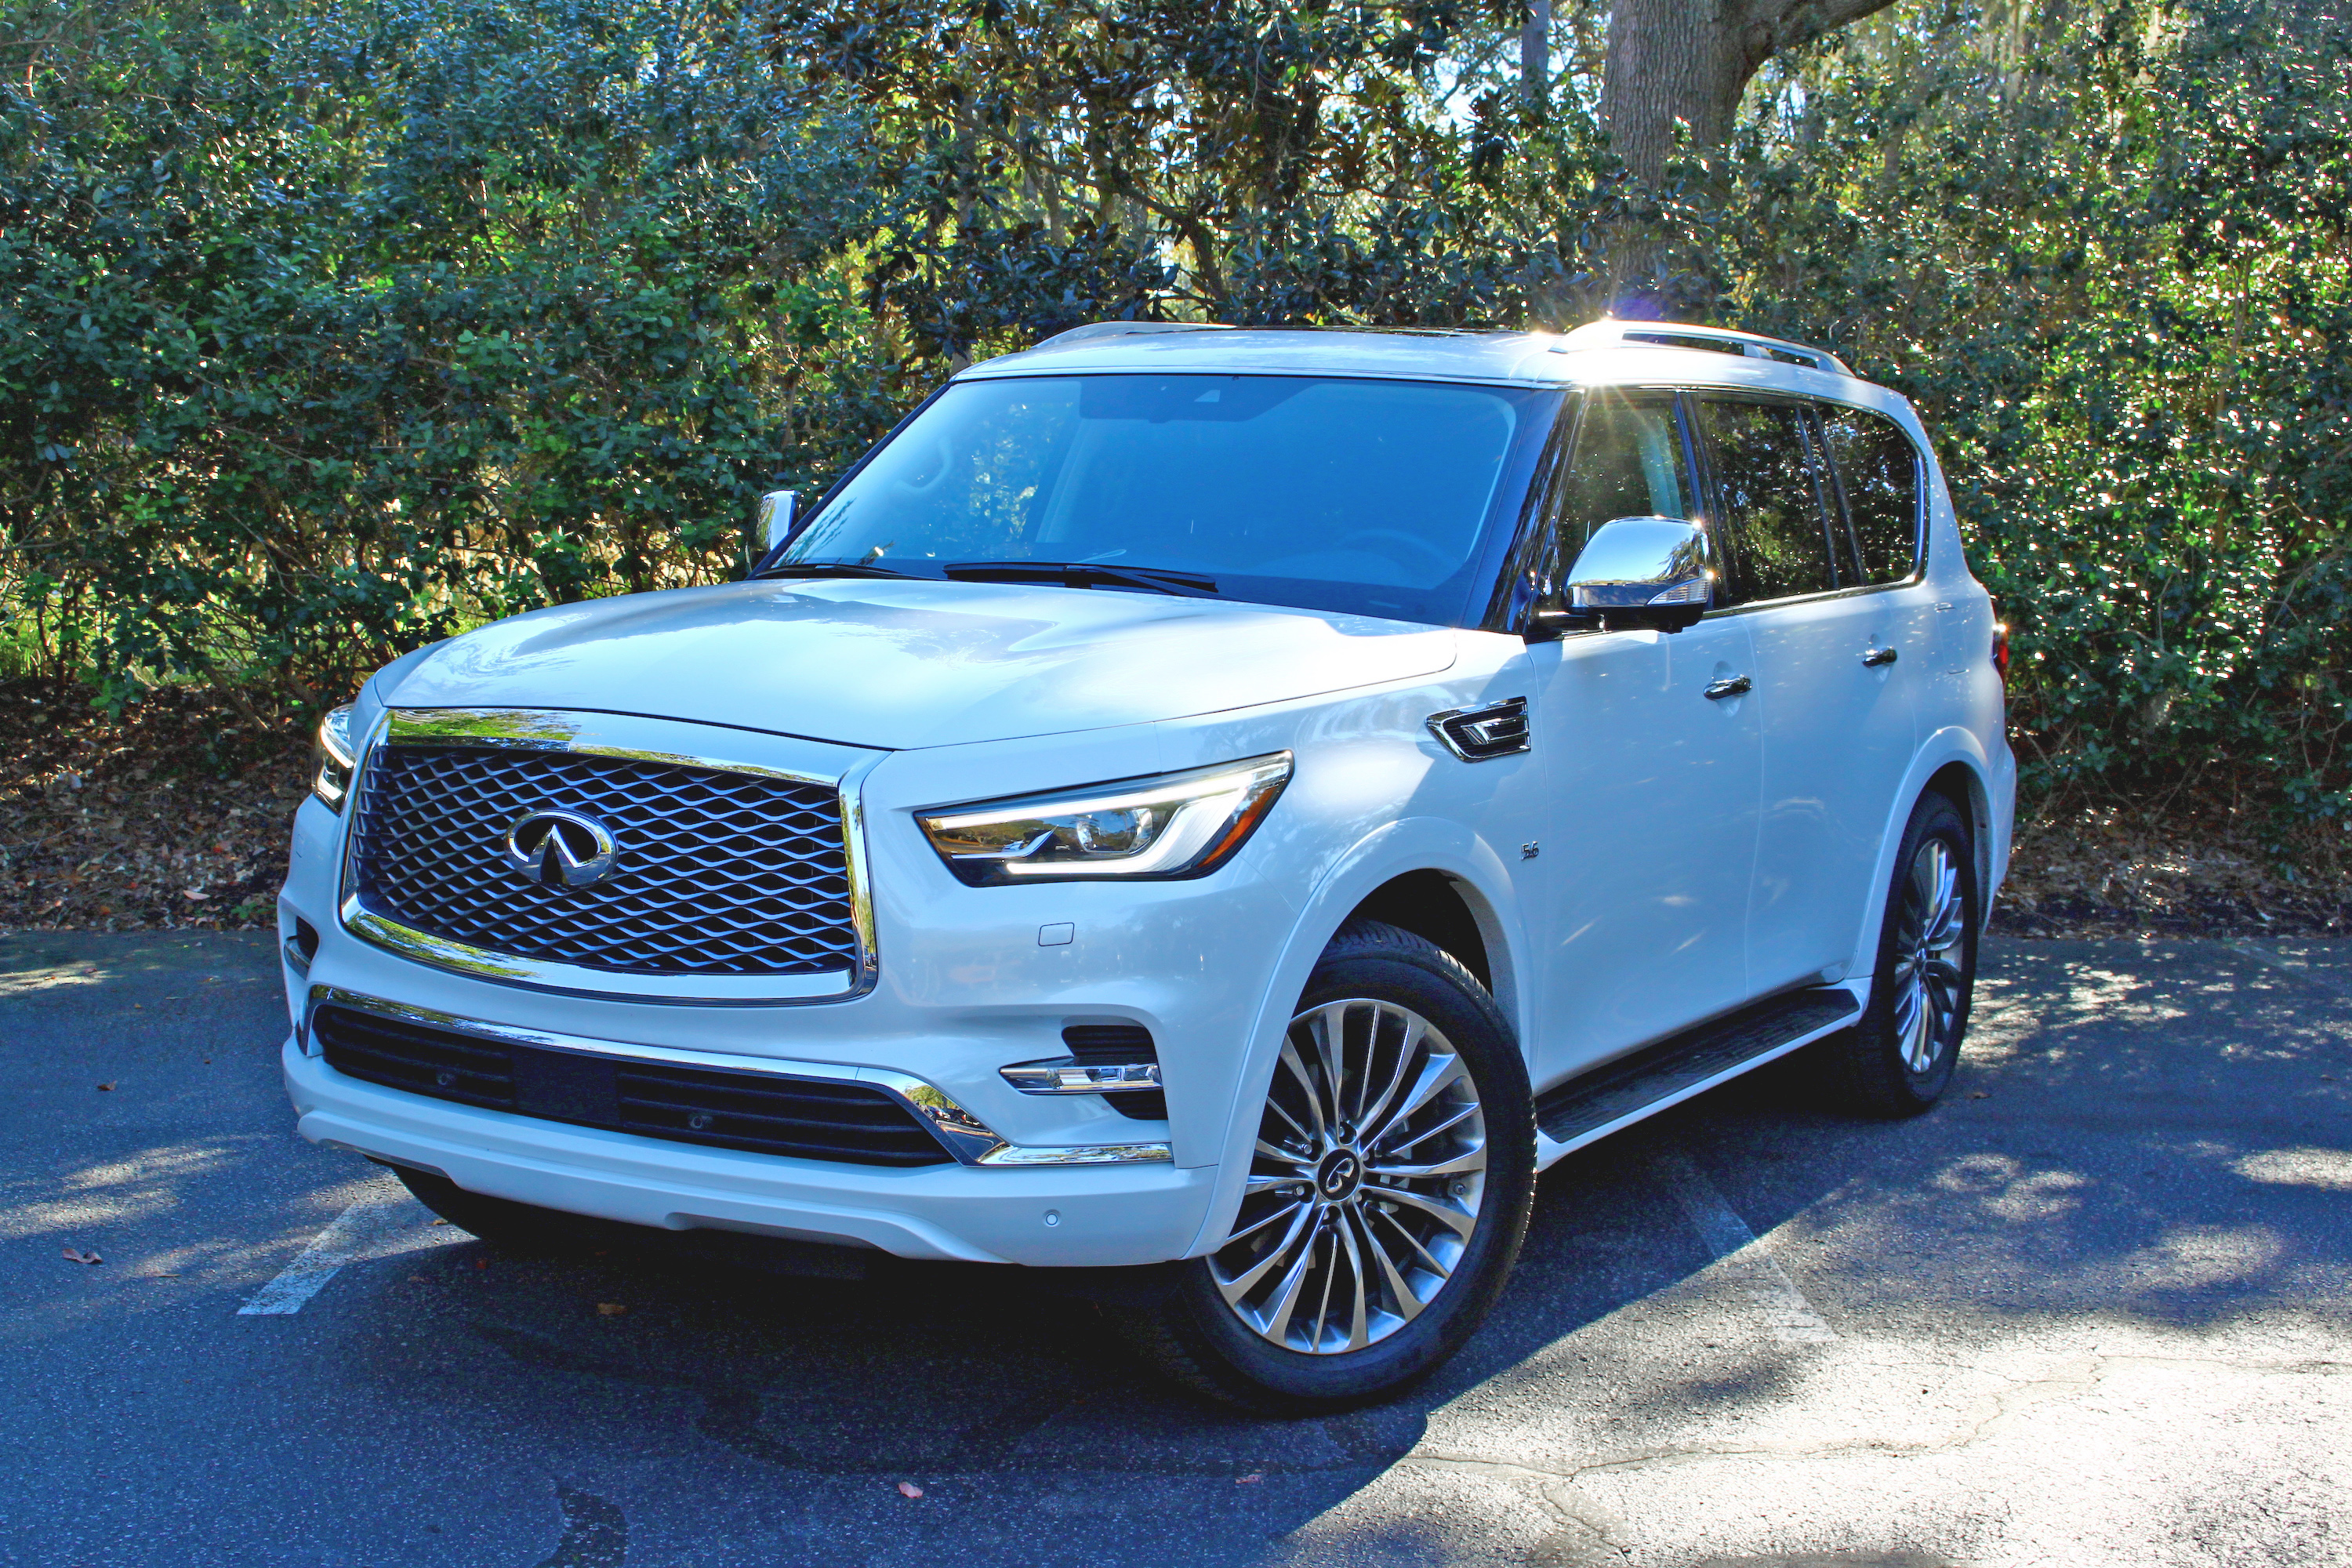 2018 infiniti qx80 review news. Black Bedroom Furniture Sets. Home Design Ideas